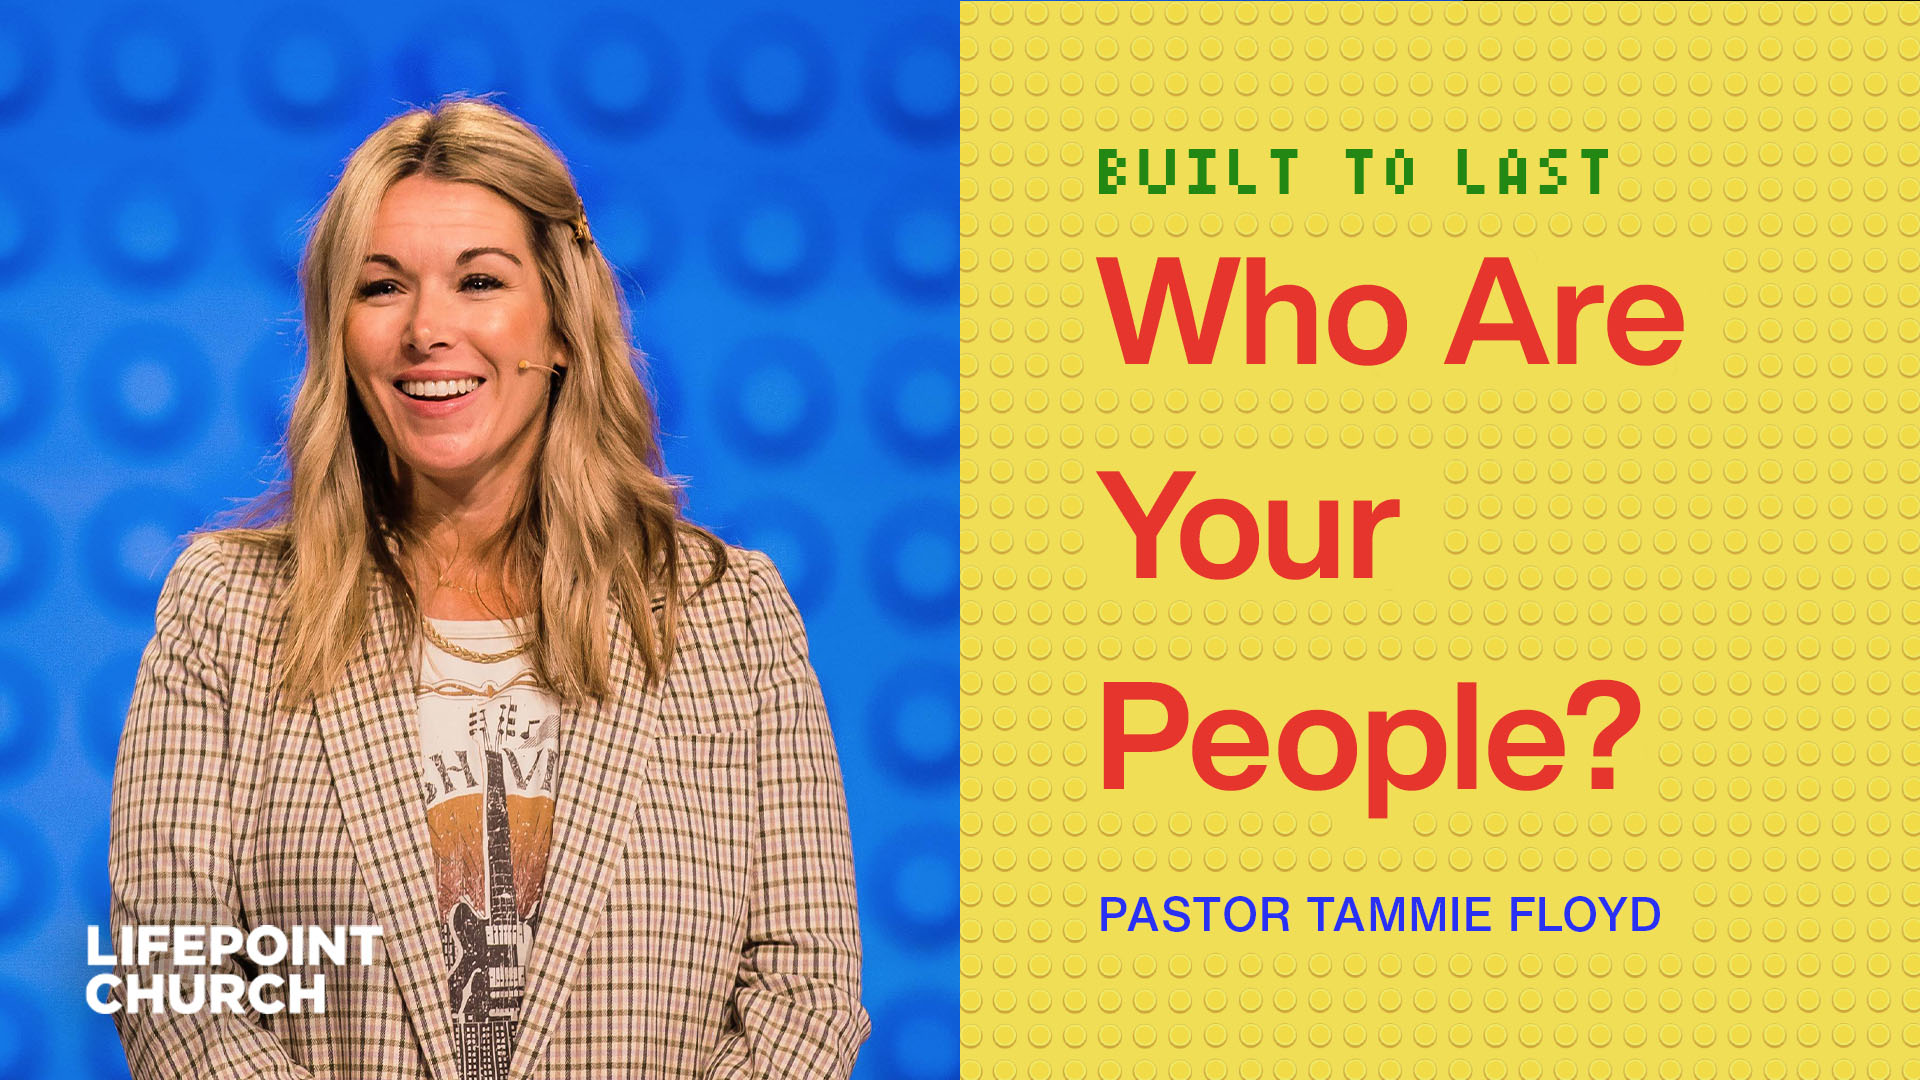 Who Are Your People?